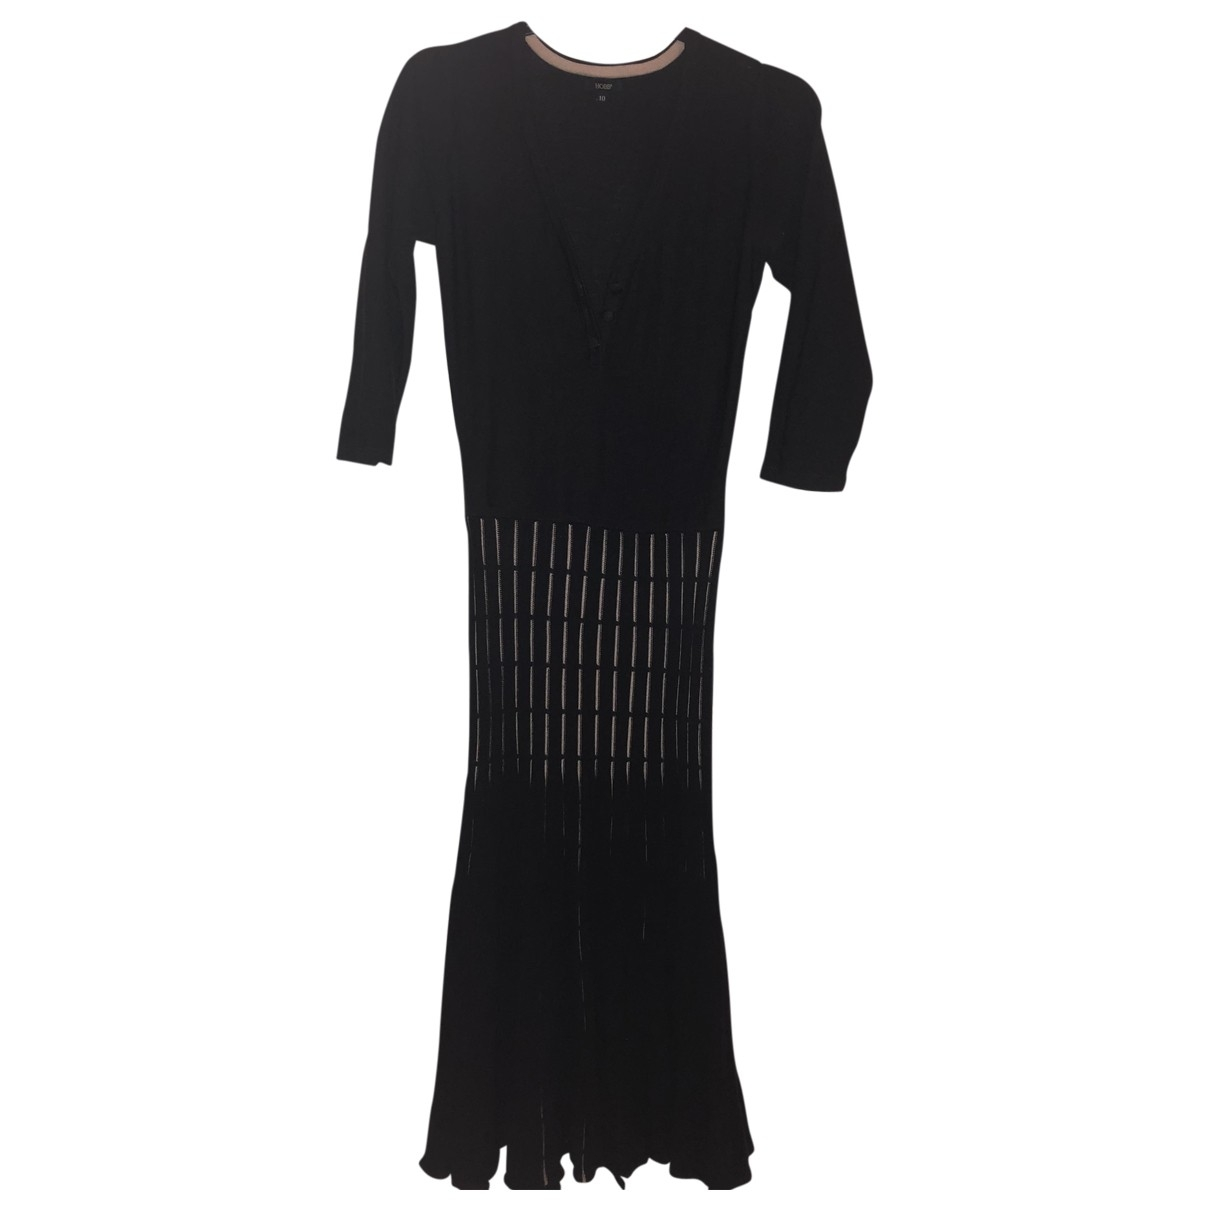 Hobbs \N Brown Wool dress for Women 10 UK